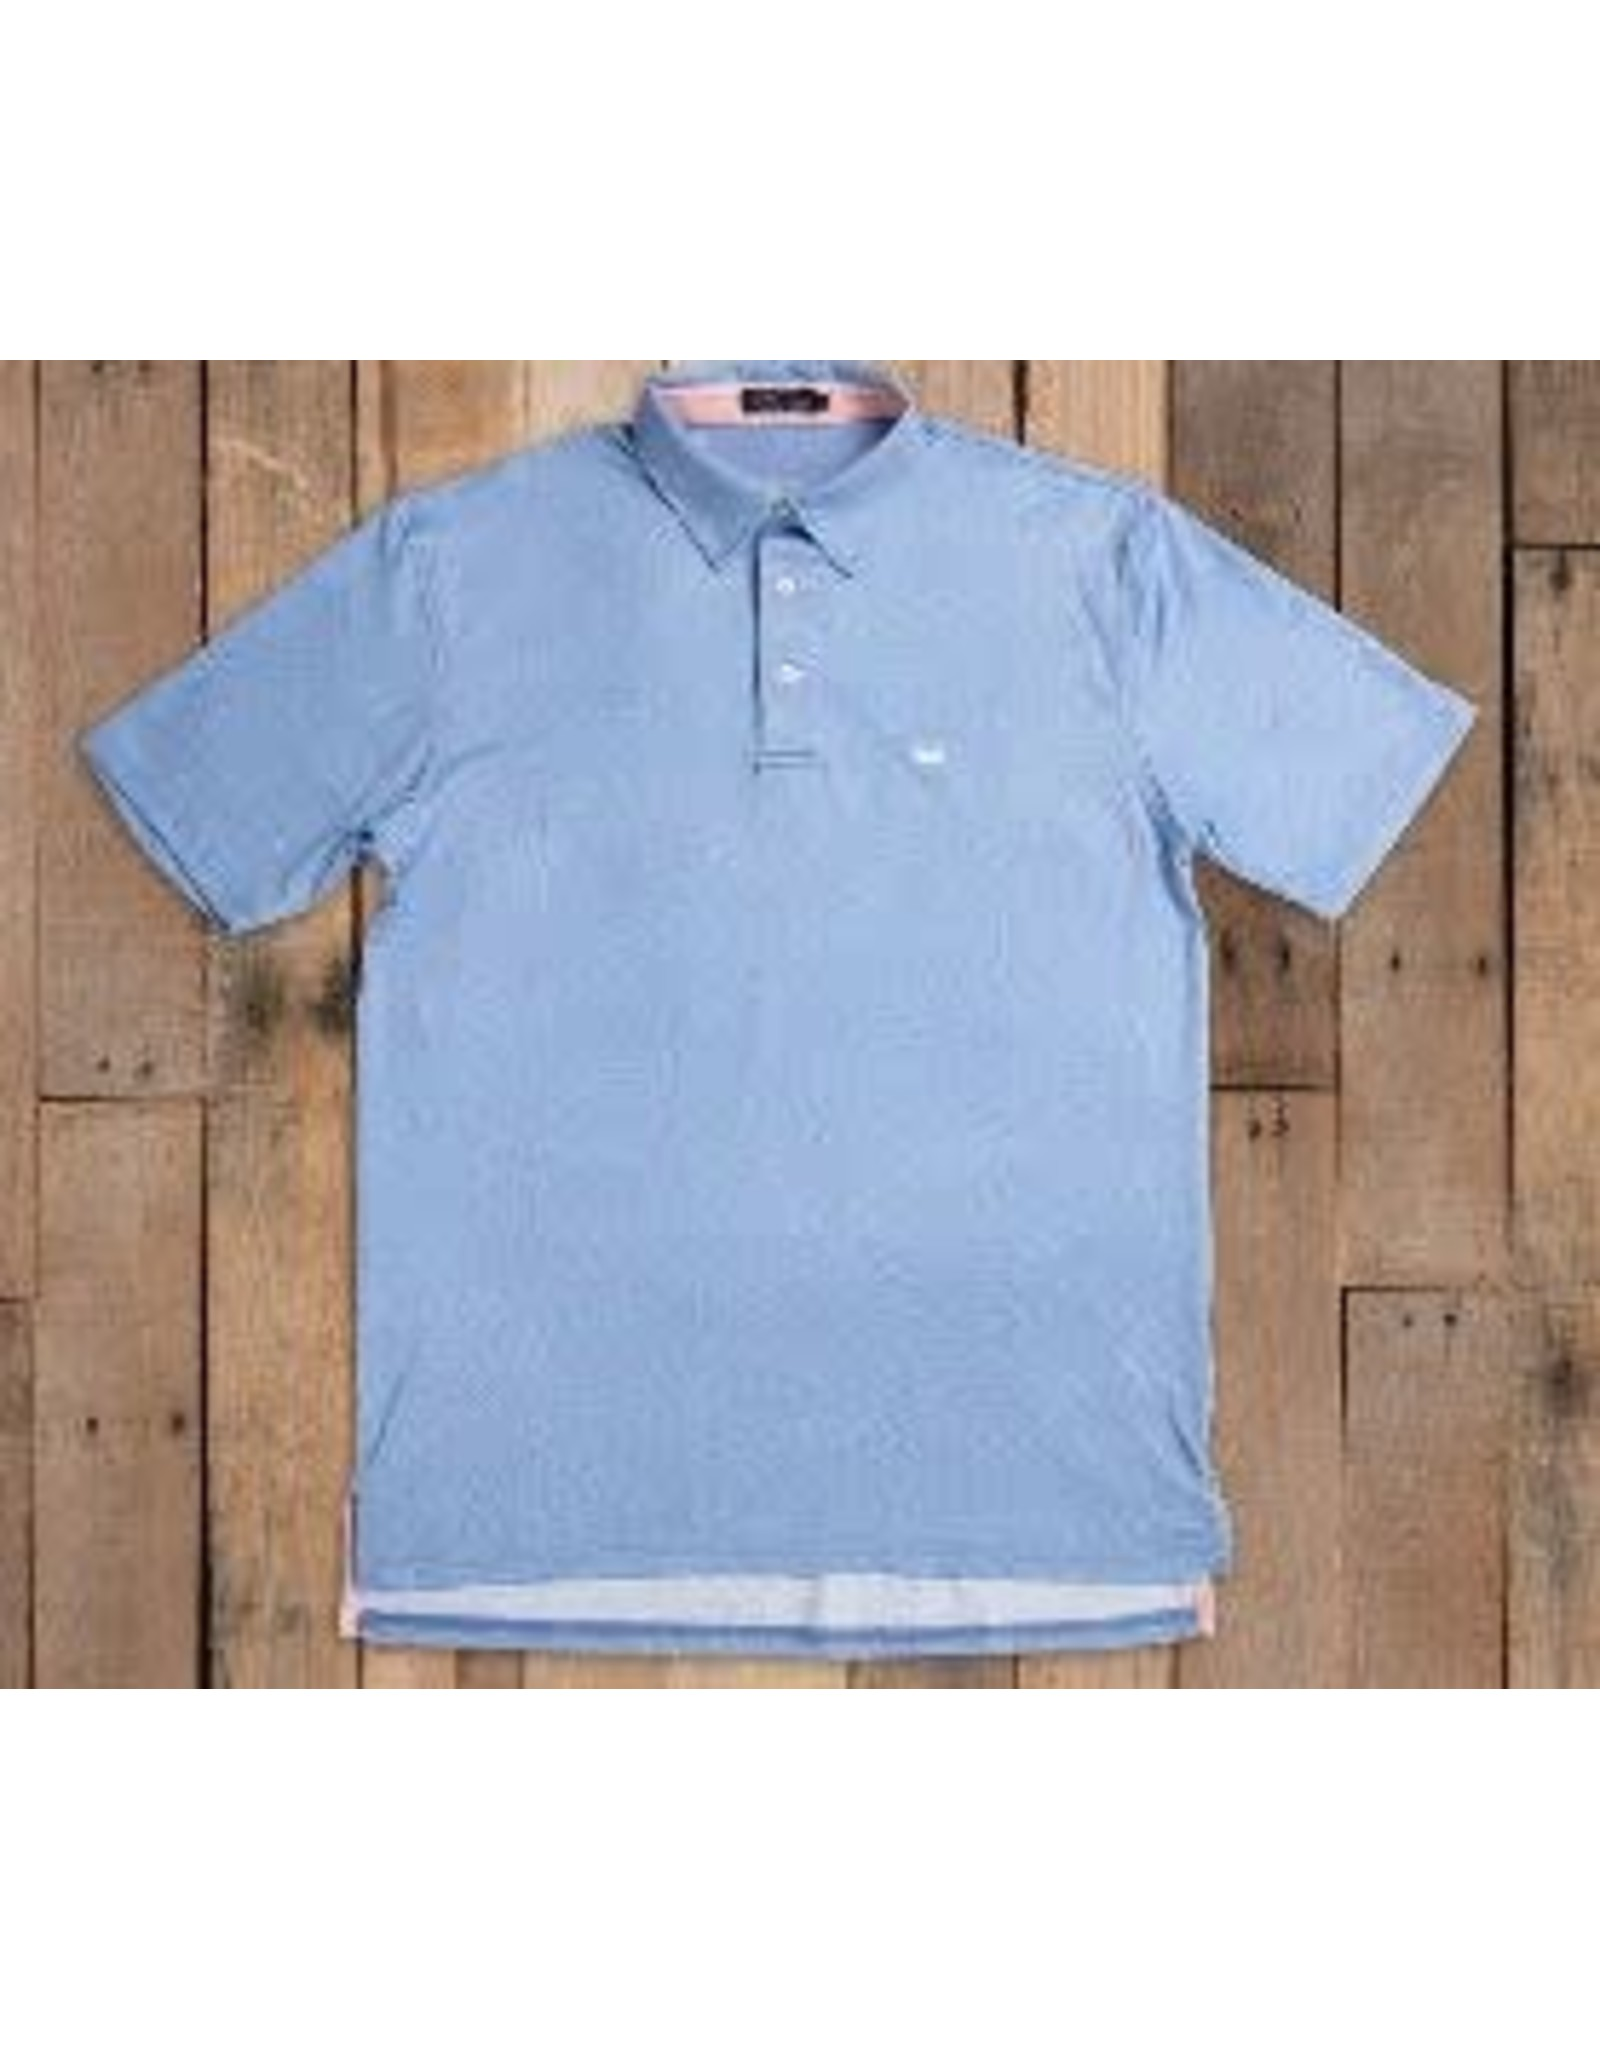 Southern Marsh Cozumel Performance Polo